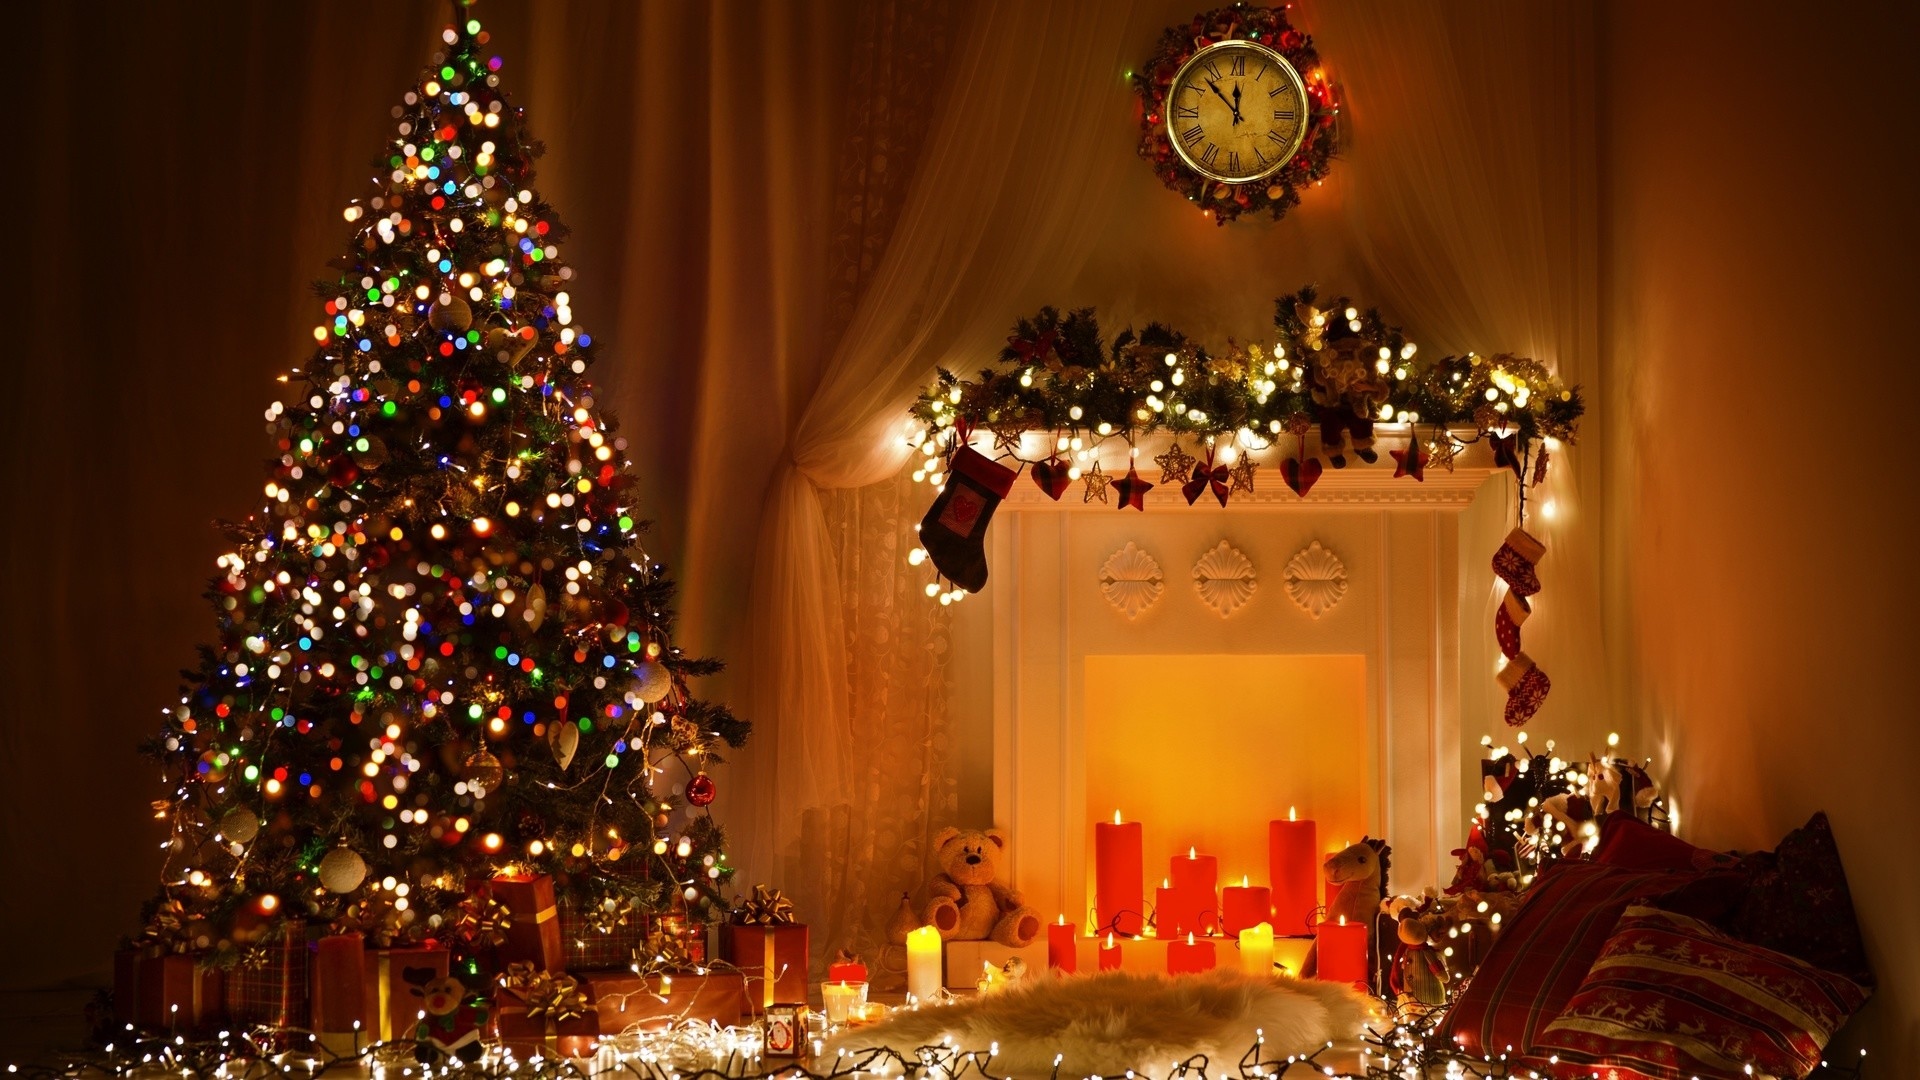 1920x1080 Preview Wallpaper New Year Christmas Tree City Ornaments Garlands Balloons